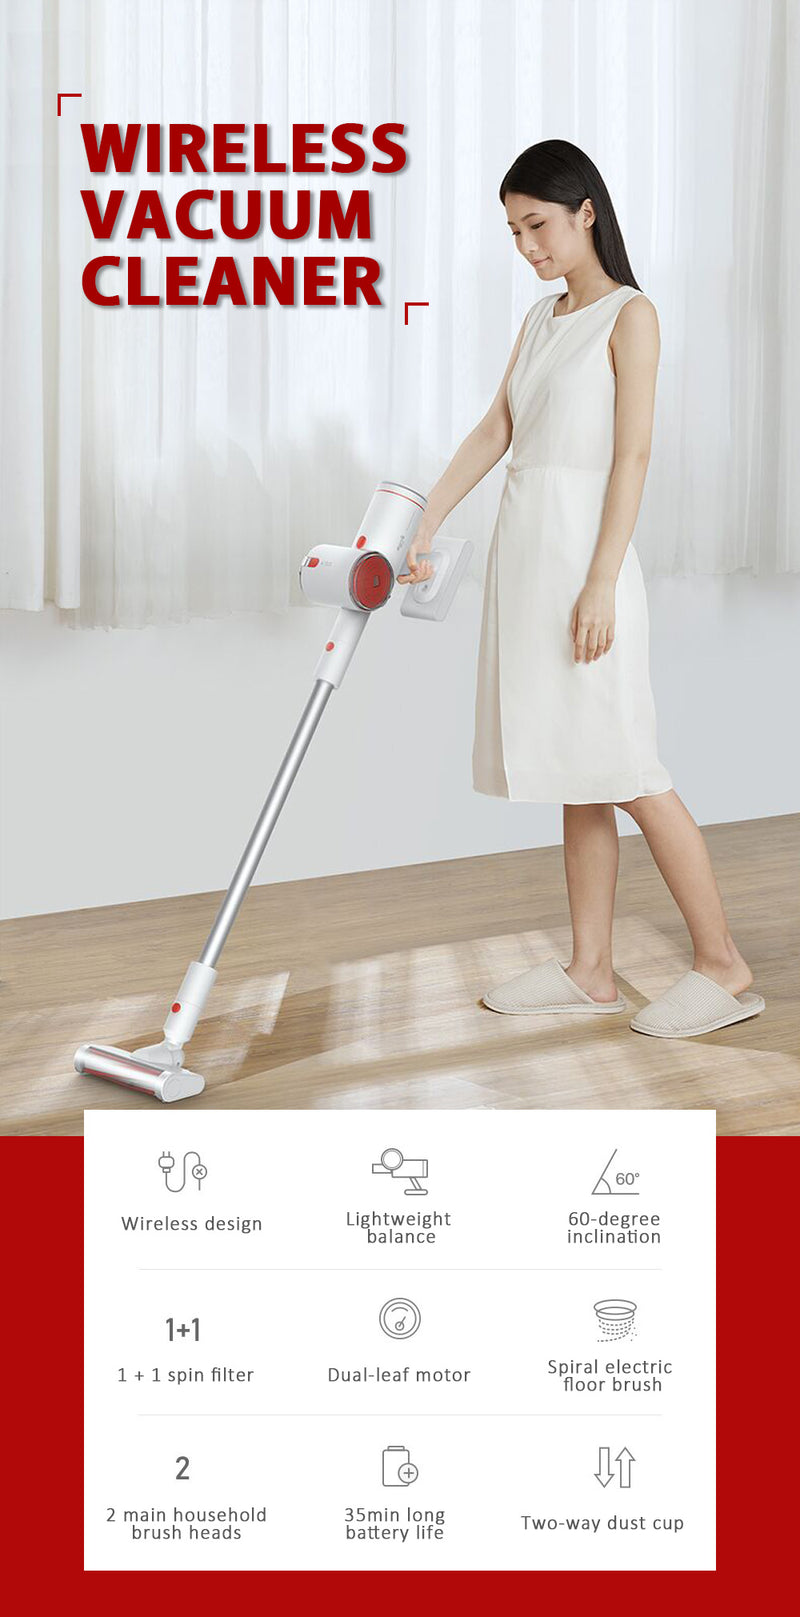 Xiaomi Deerma VC25 2 in 1 Vertical Handheld Vacuum Cleaner | Lightweight | Cordless | Ultra Quiet | Car Vacuum [Wistech Home] - Wistech Singapore